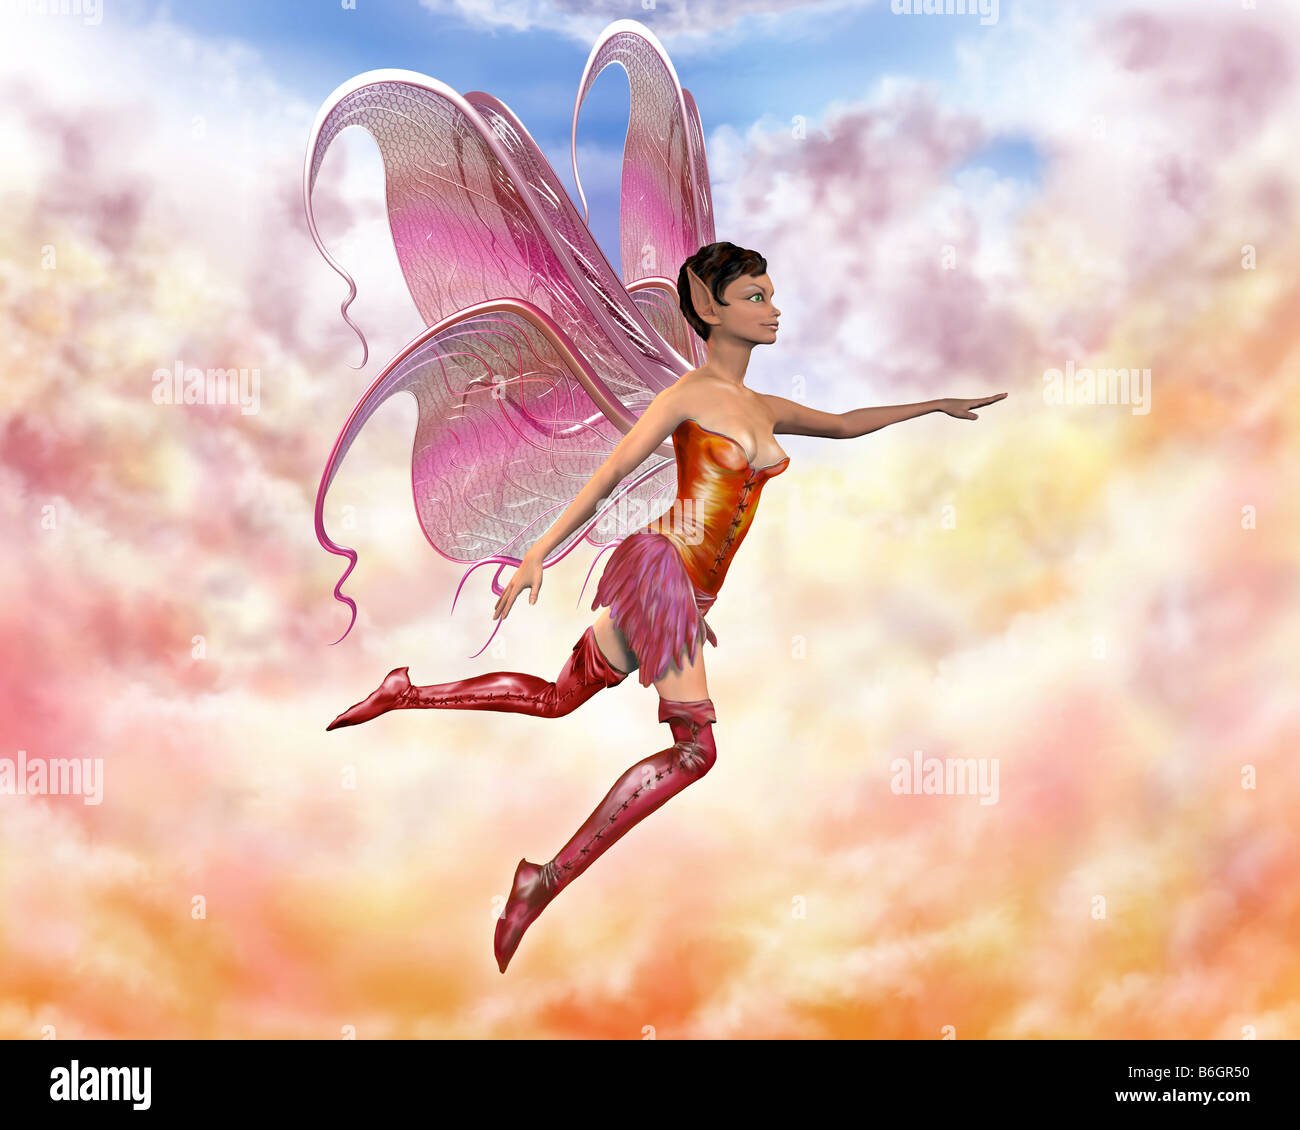 Illustration of a fairy flying through the pastel clouds - Stock Image